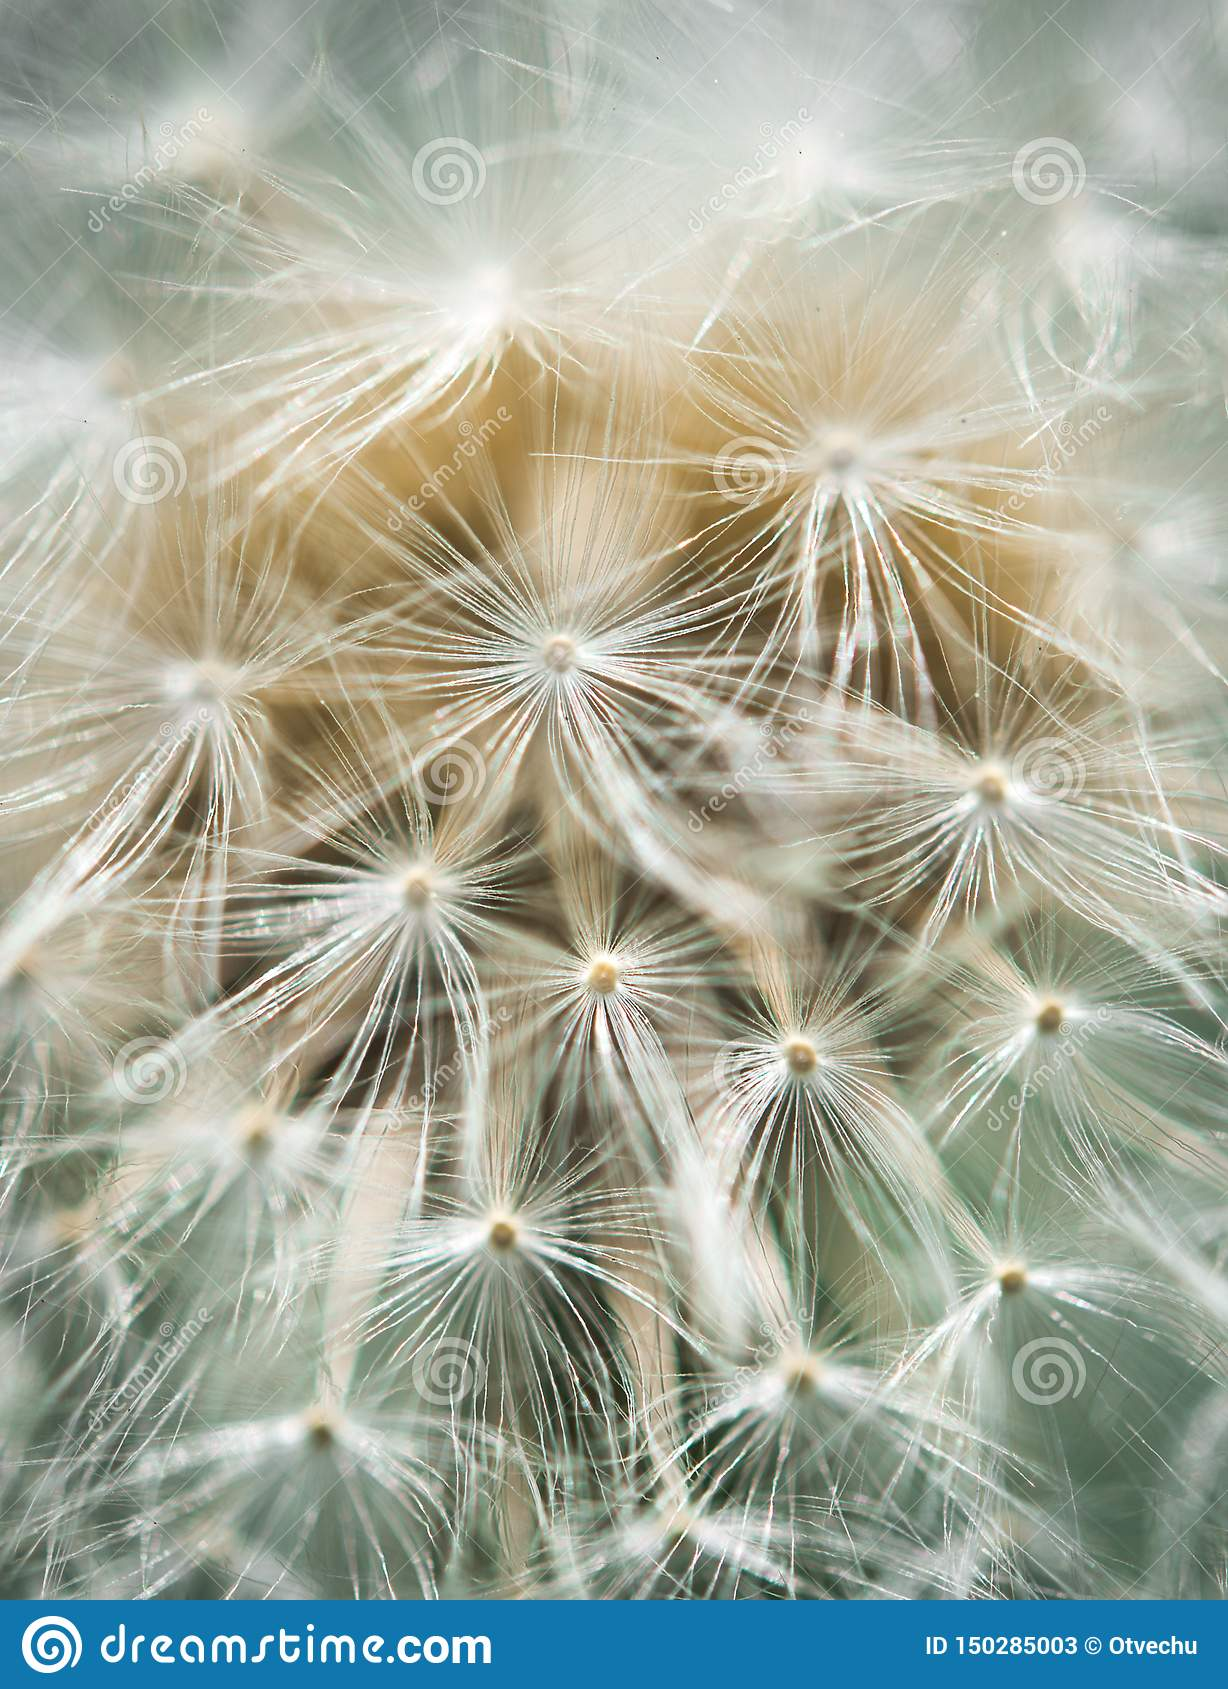 Dandelion blowball close-up in soft colors